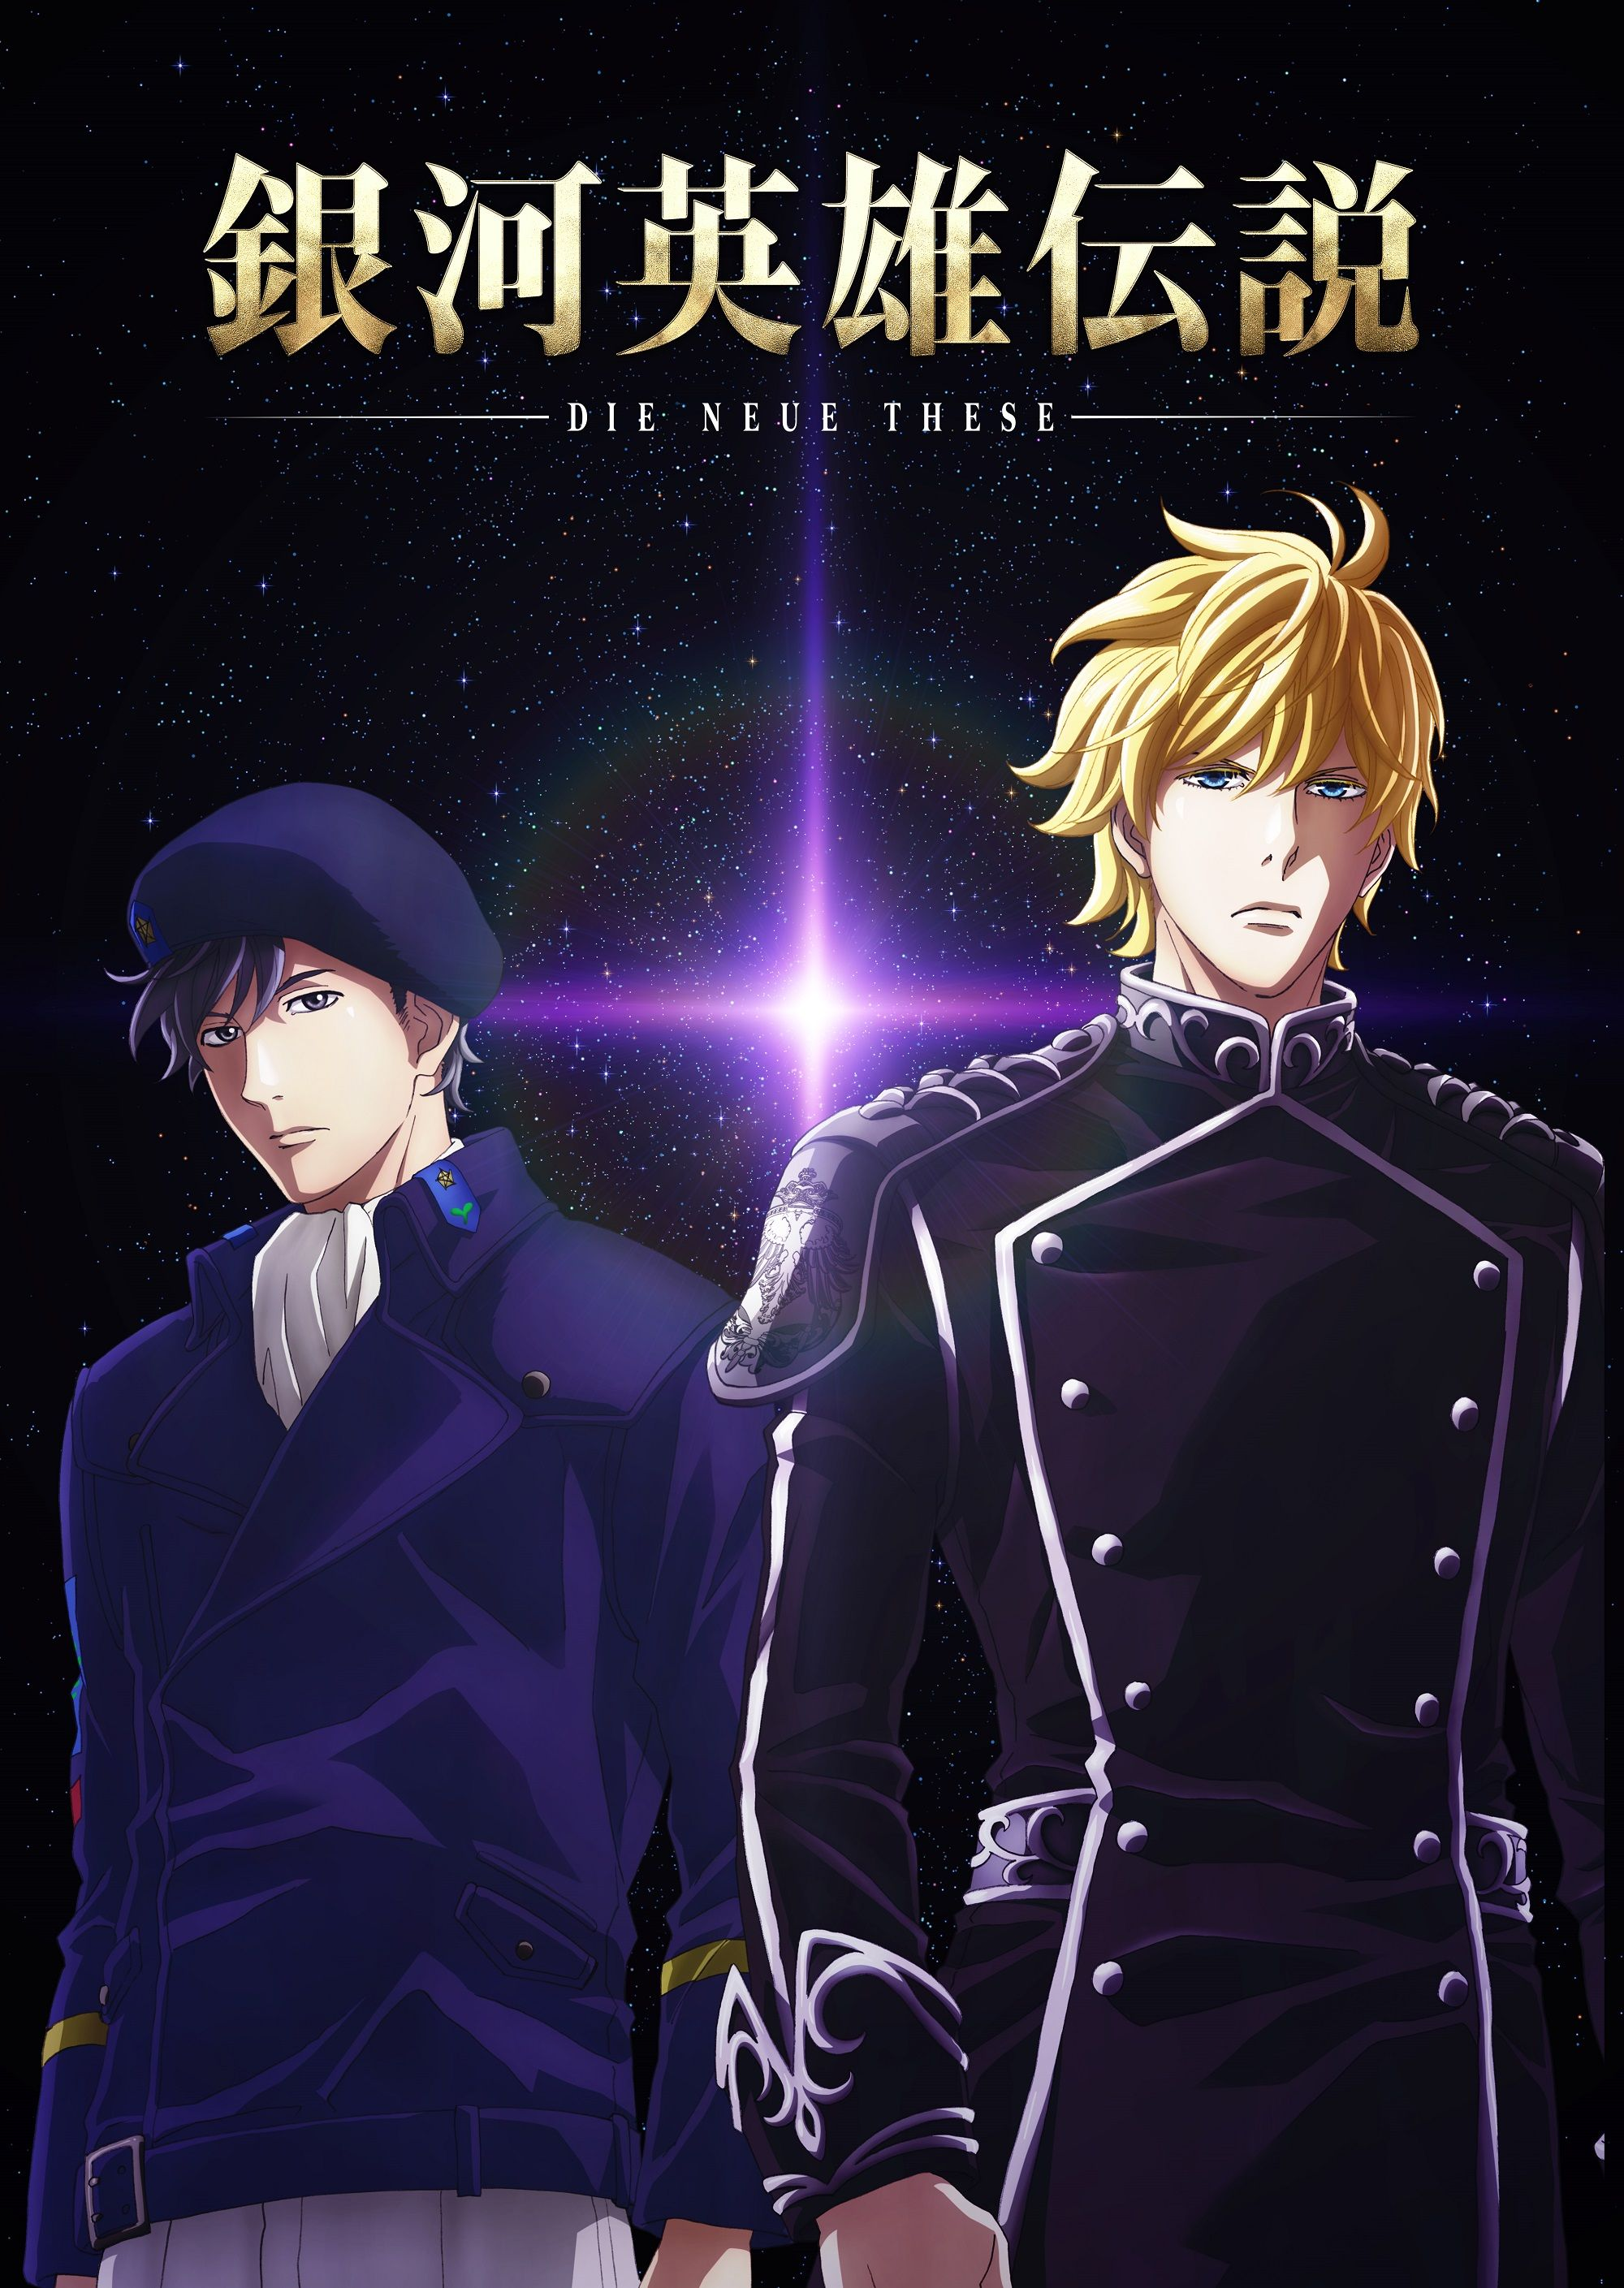 The Legend of the Galactic Heroes: Die Neue Thes ตอนที่ 1-12 ซับไทย